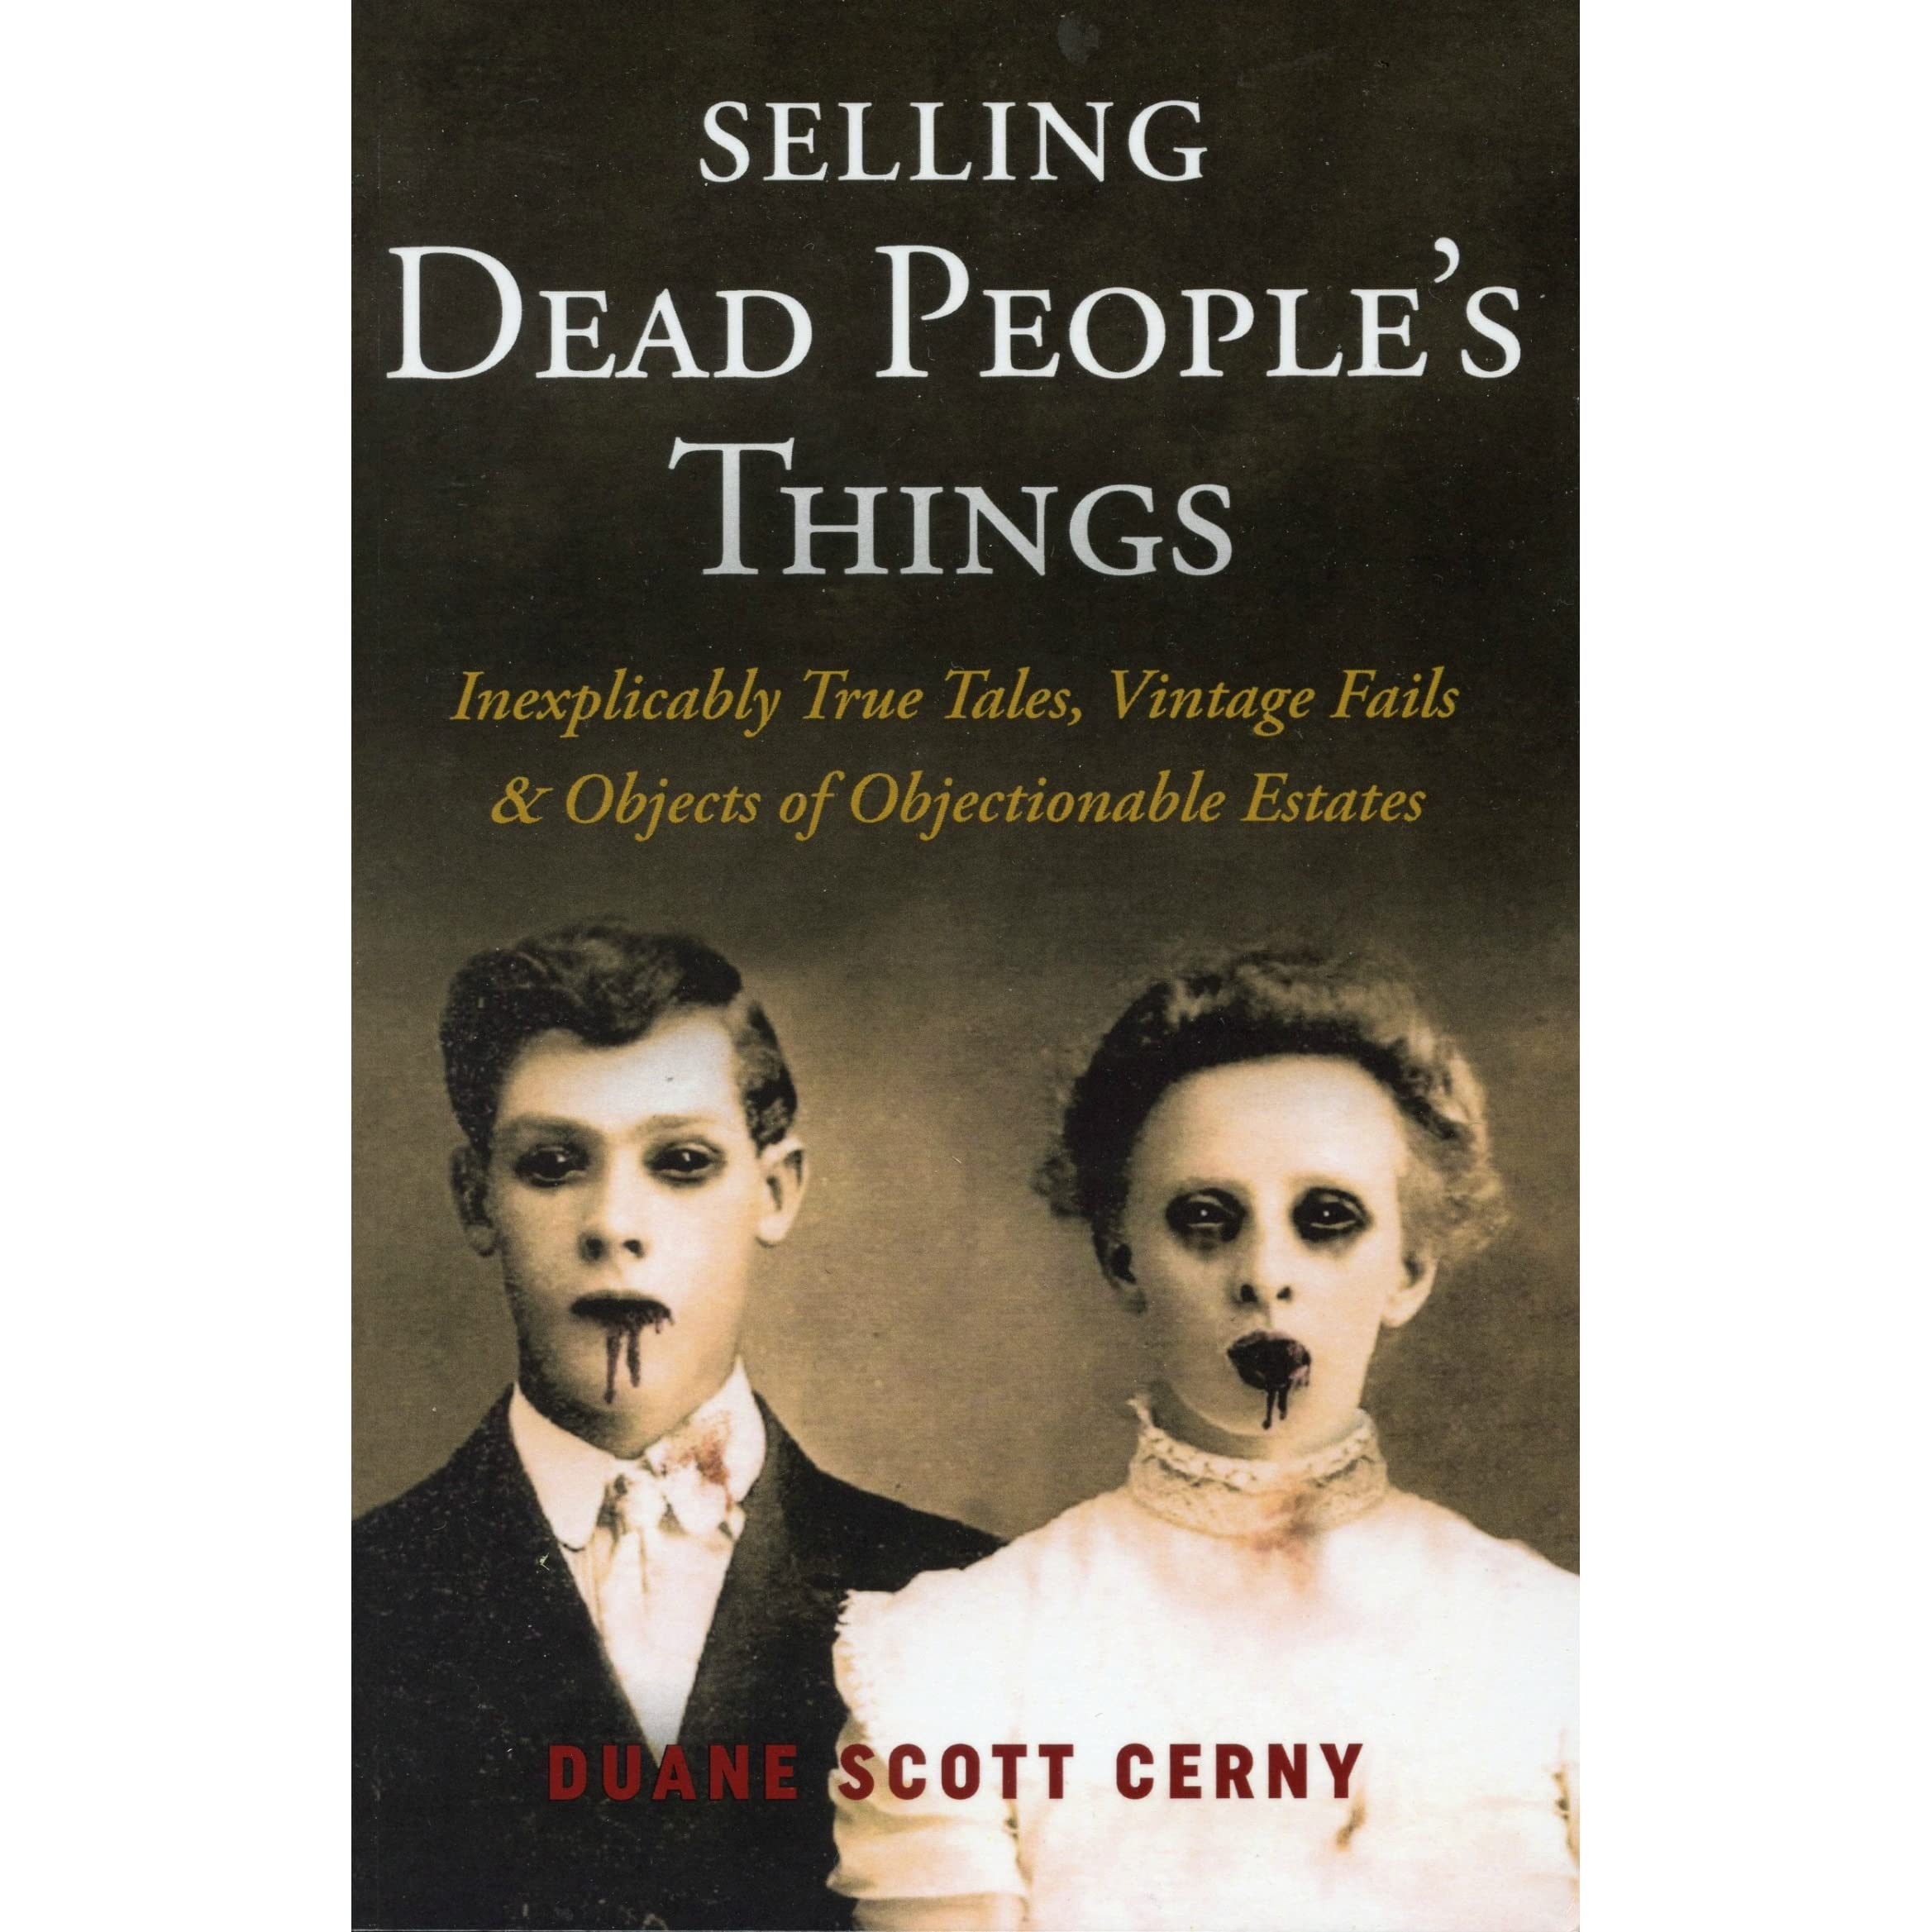 Selling Dead Peoples Things Inexplicably True Tales Vintage Fails No Disassemble The Behind Scenes Pic Of Day Is Alive Objects Objectionable Estates By Duane Scott Cerny